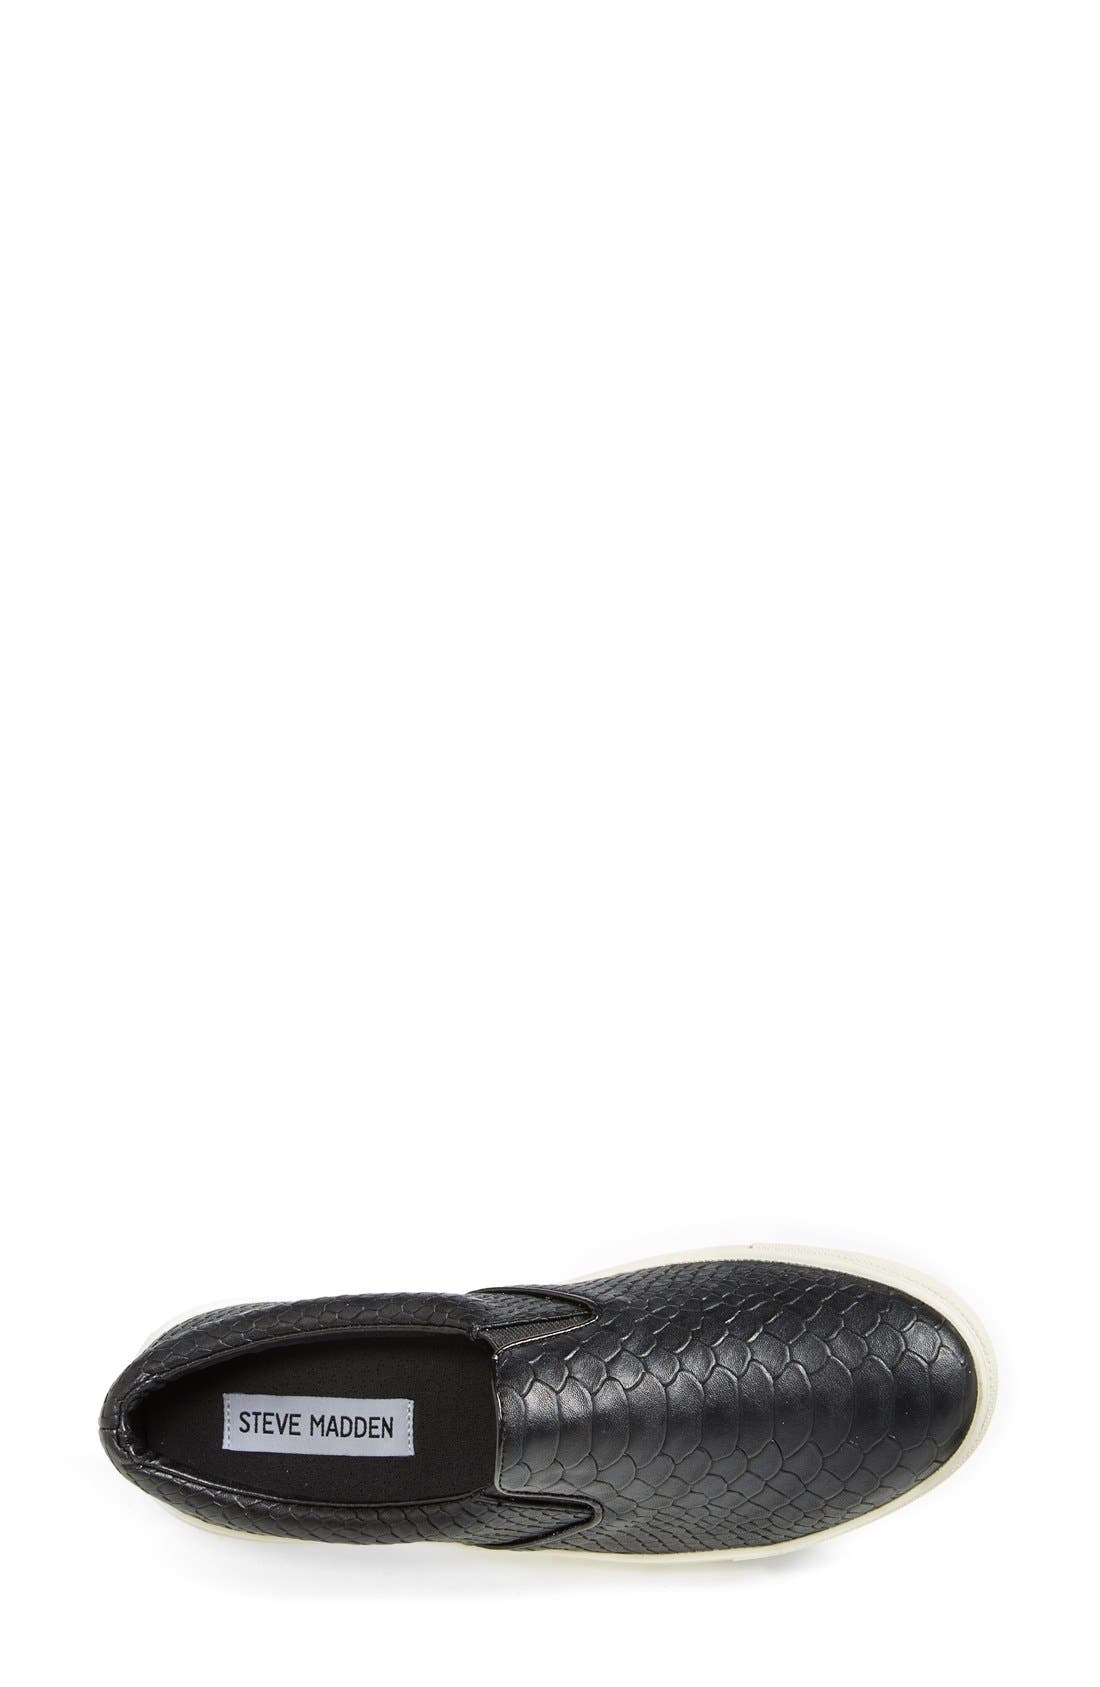 'Ecntrc-c' Snake-Embossed Slip-On Sneaker,                             Alternate thumbnail 3, color,